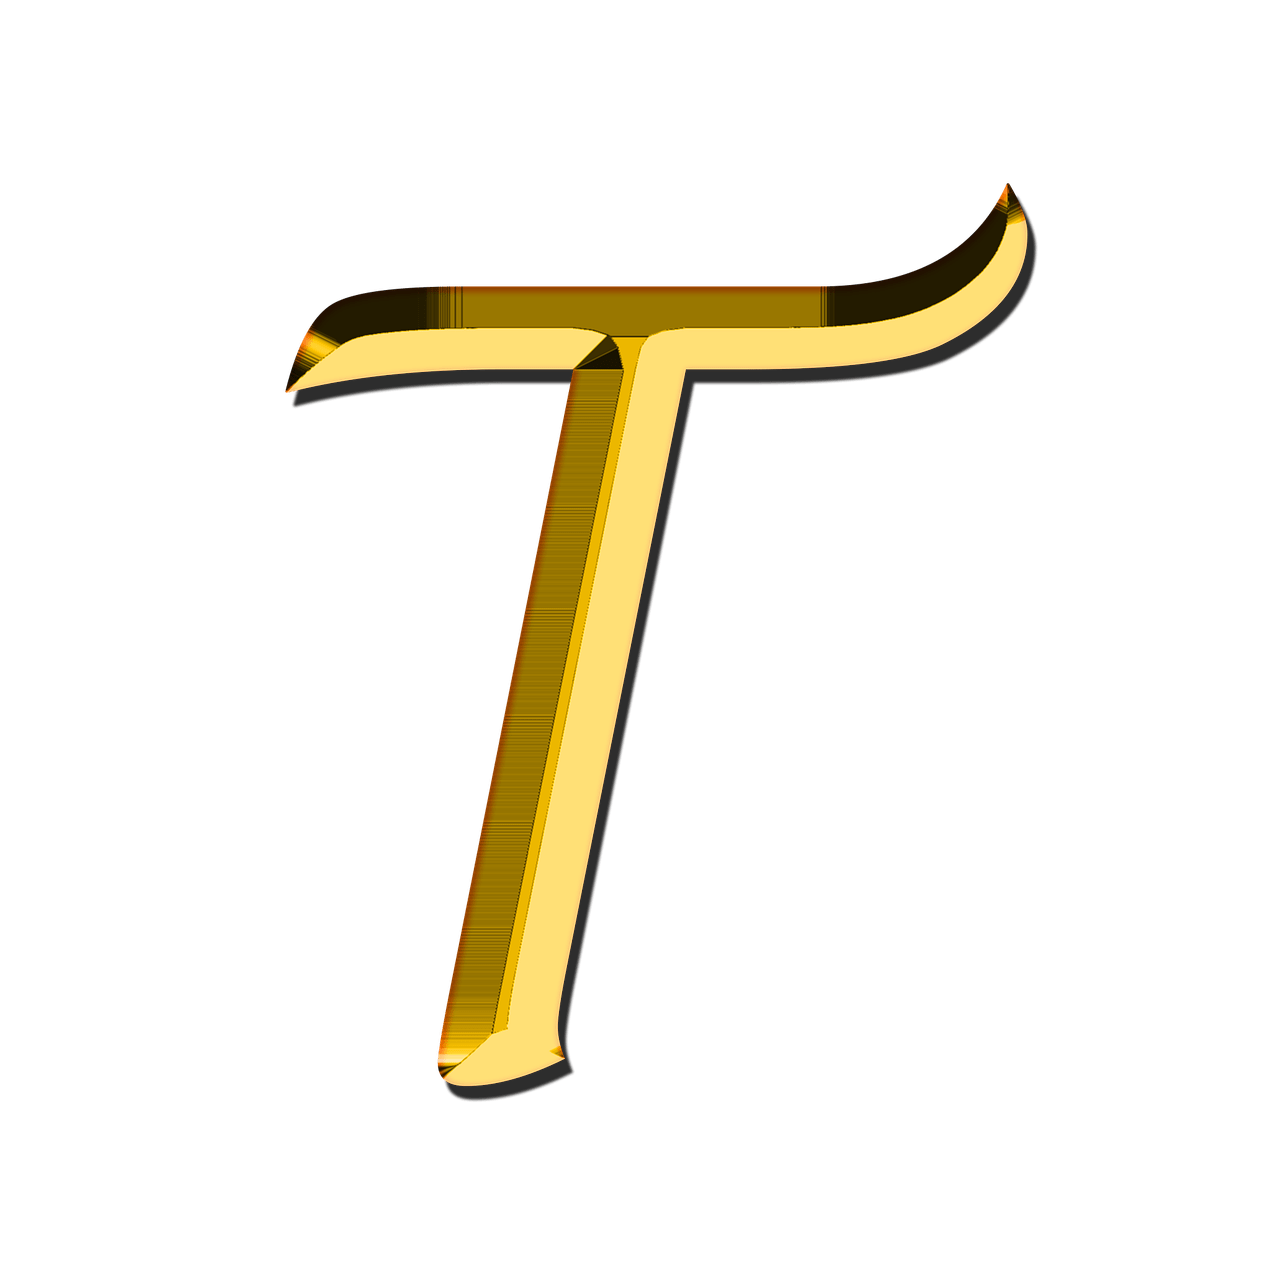 T transparent. Capital letter png stickpng